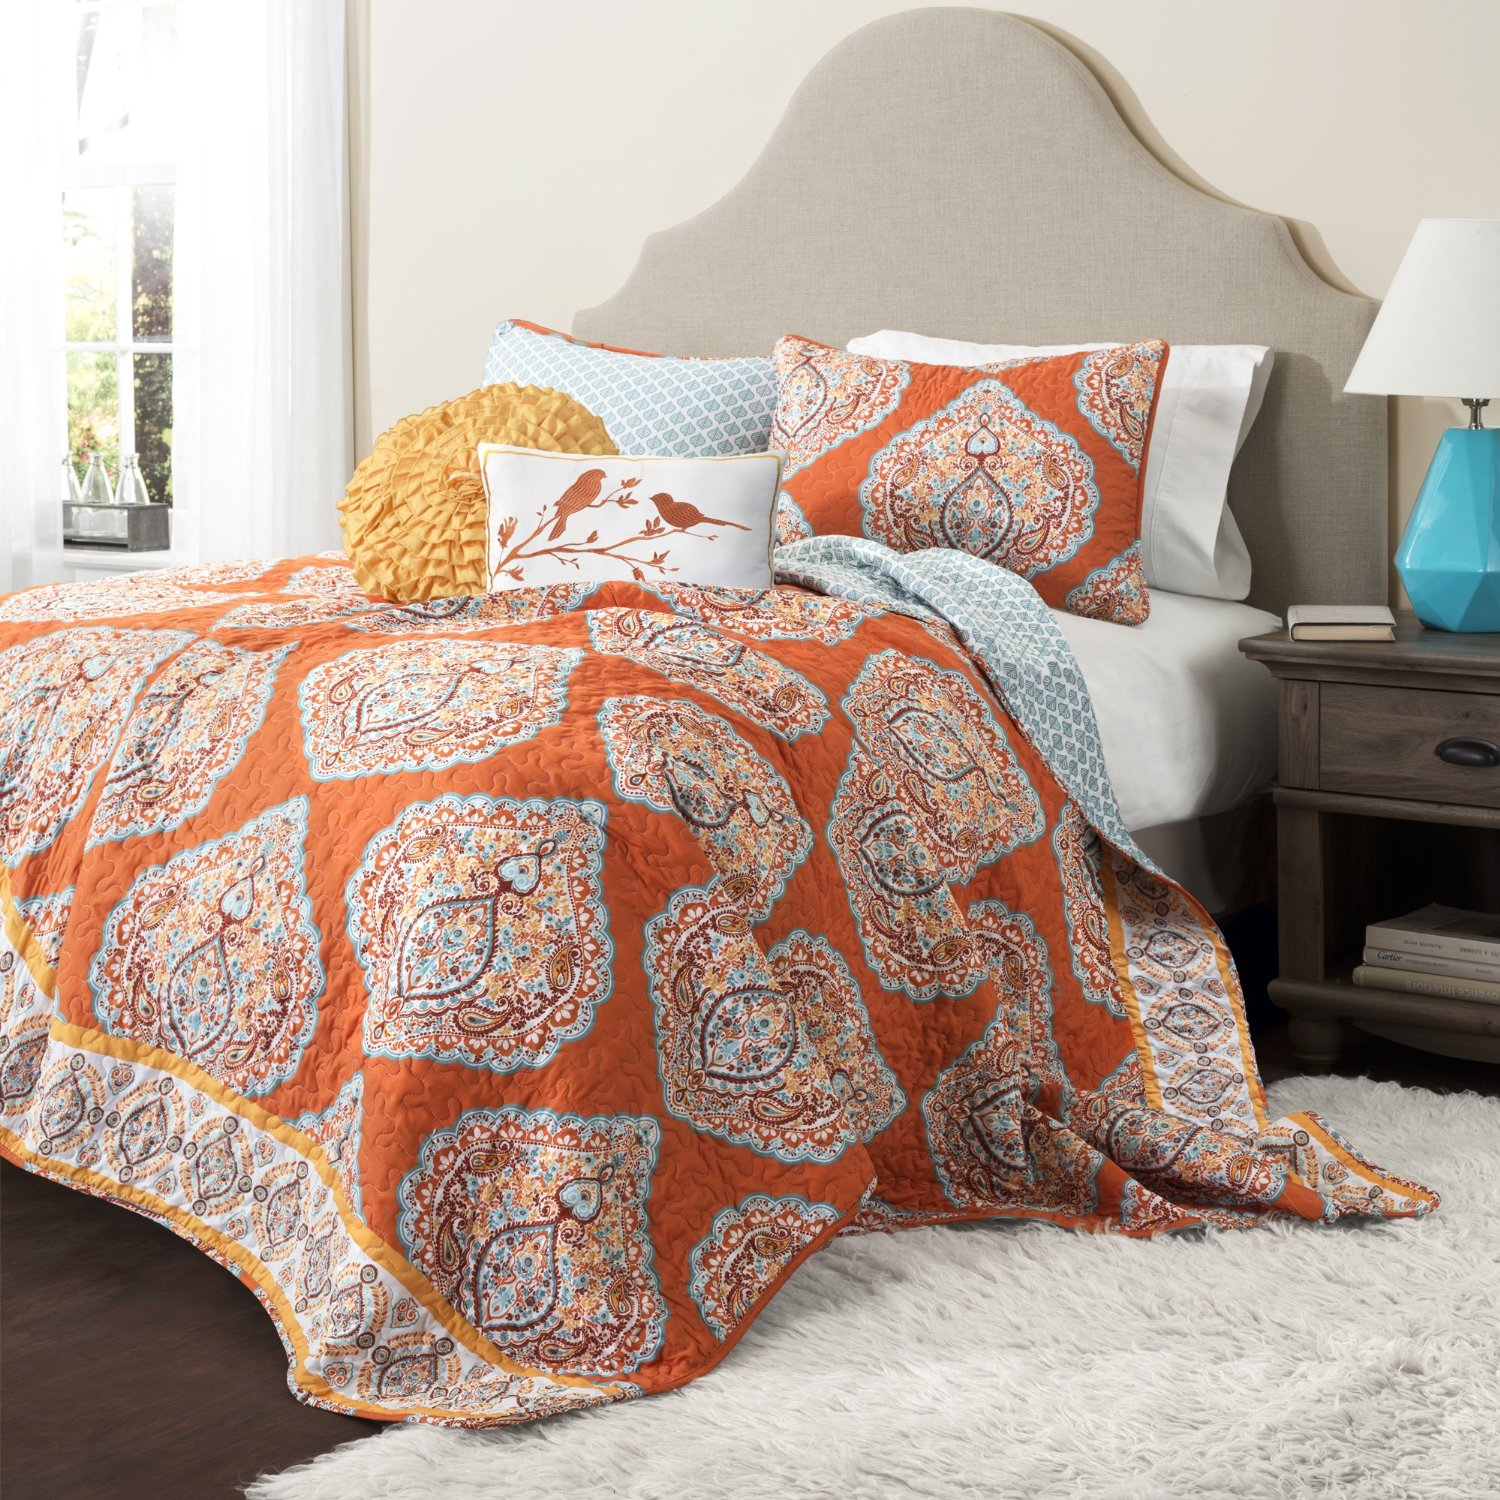 More Than Bedding, Quilts Are Art